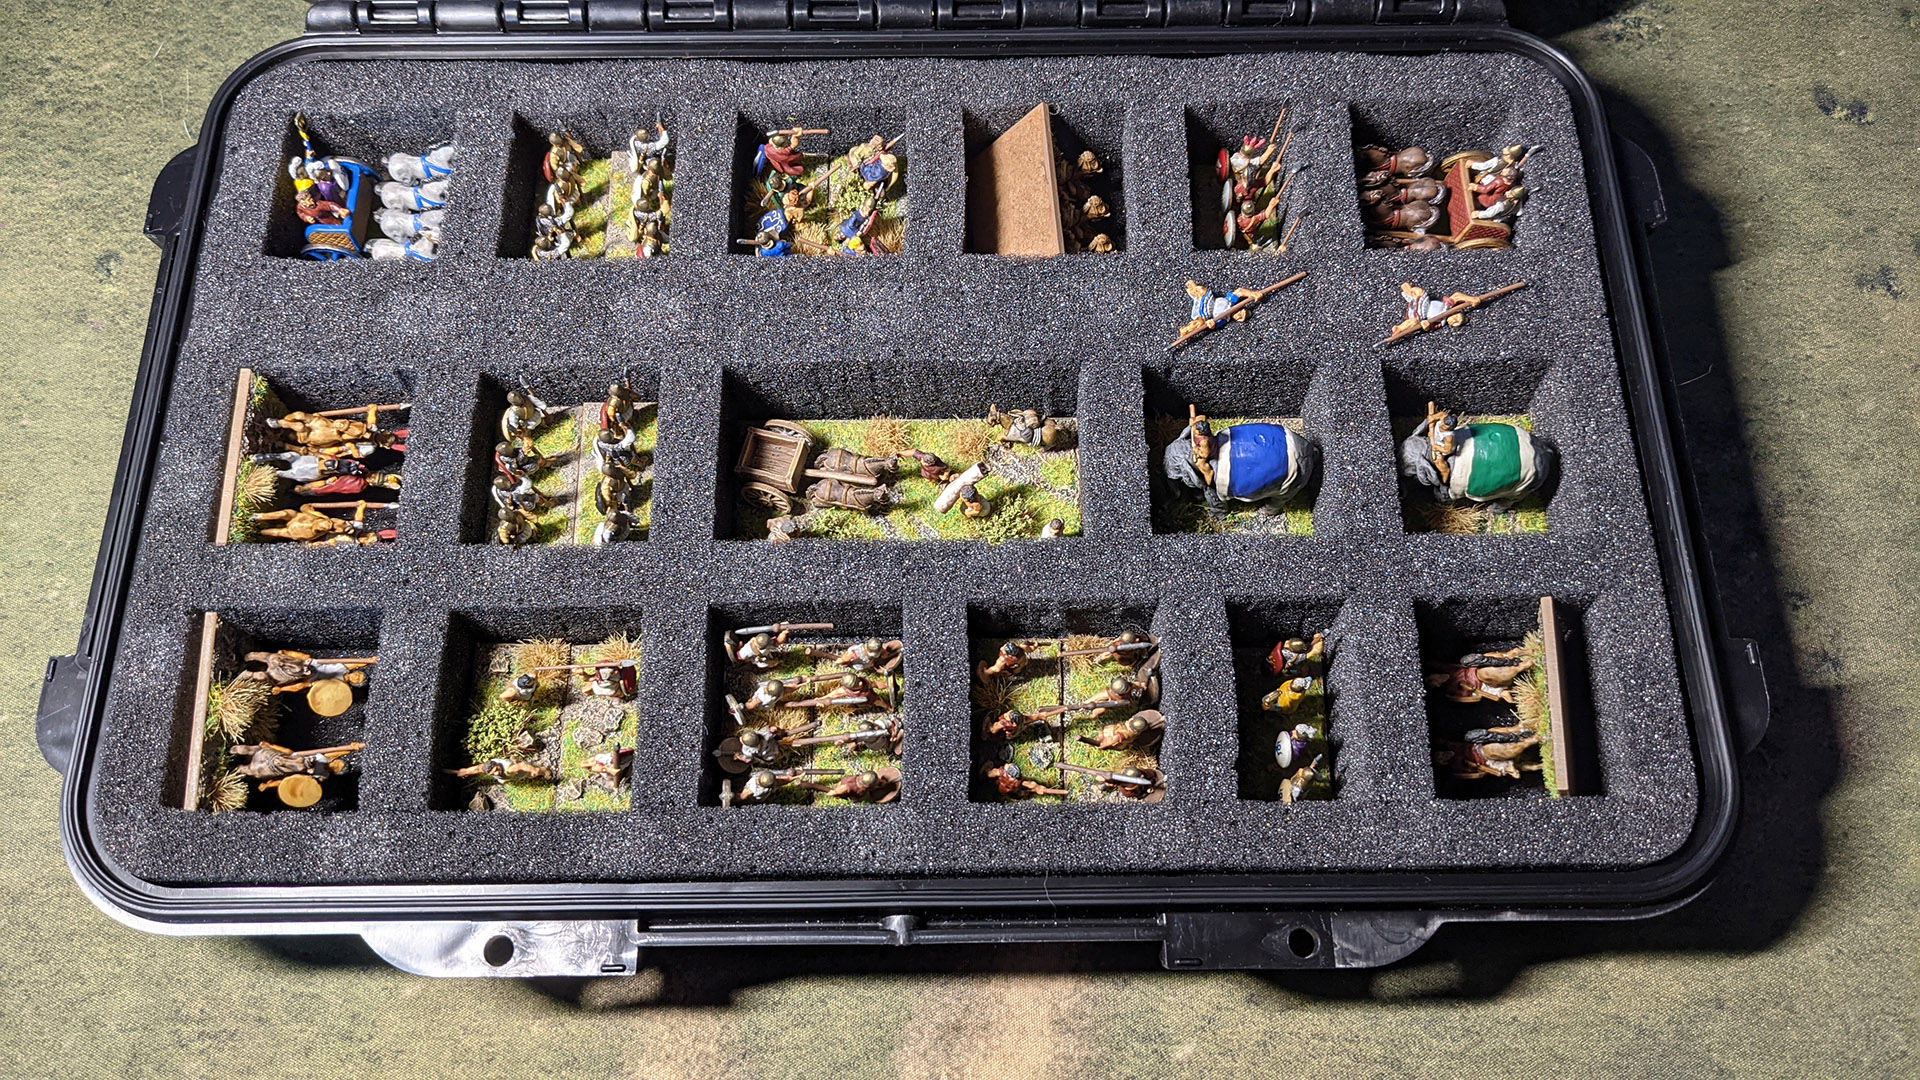 The Early and Late Carthaginian armies share many common units and I can just about fit both in a single storage box.